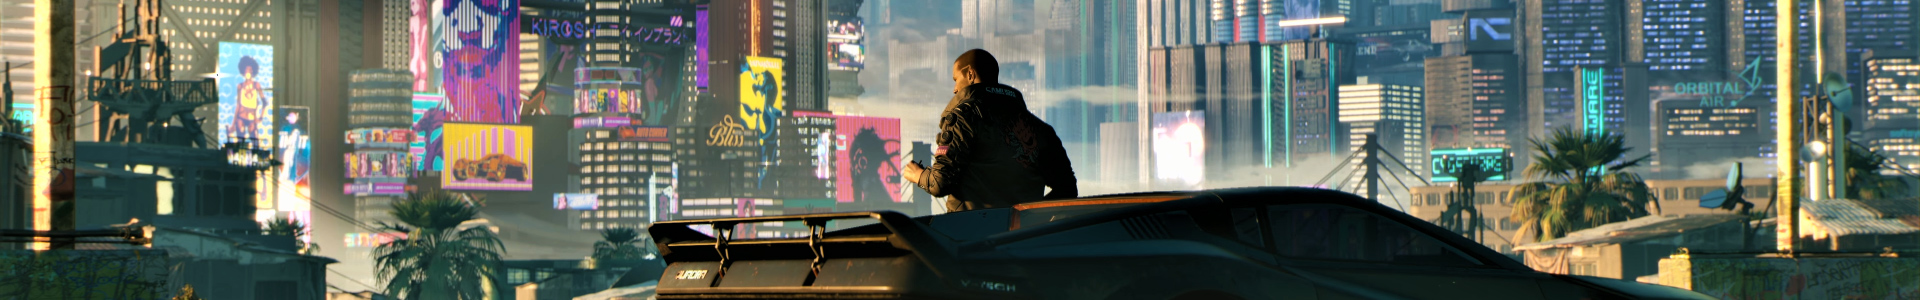 Banner media of Cyberpunk 2077 video game.